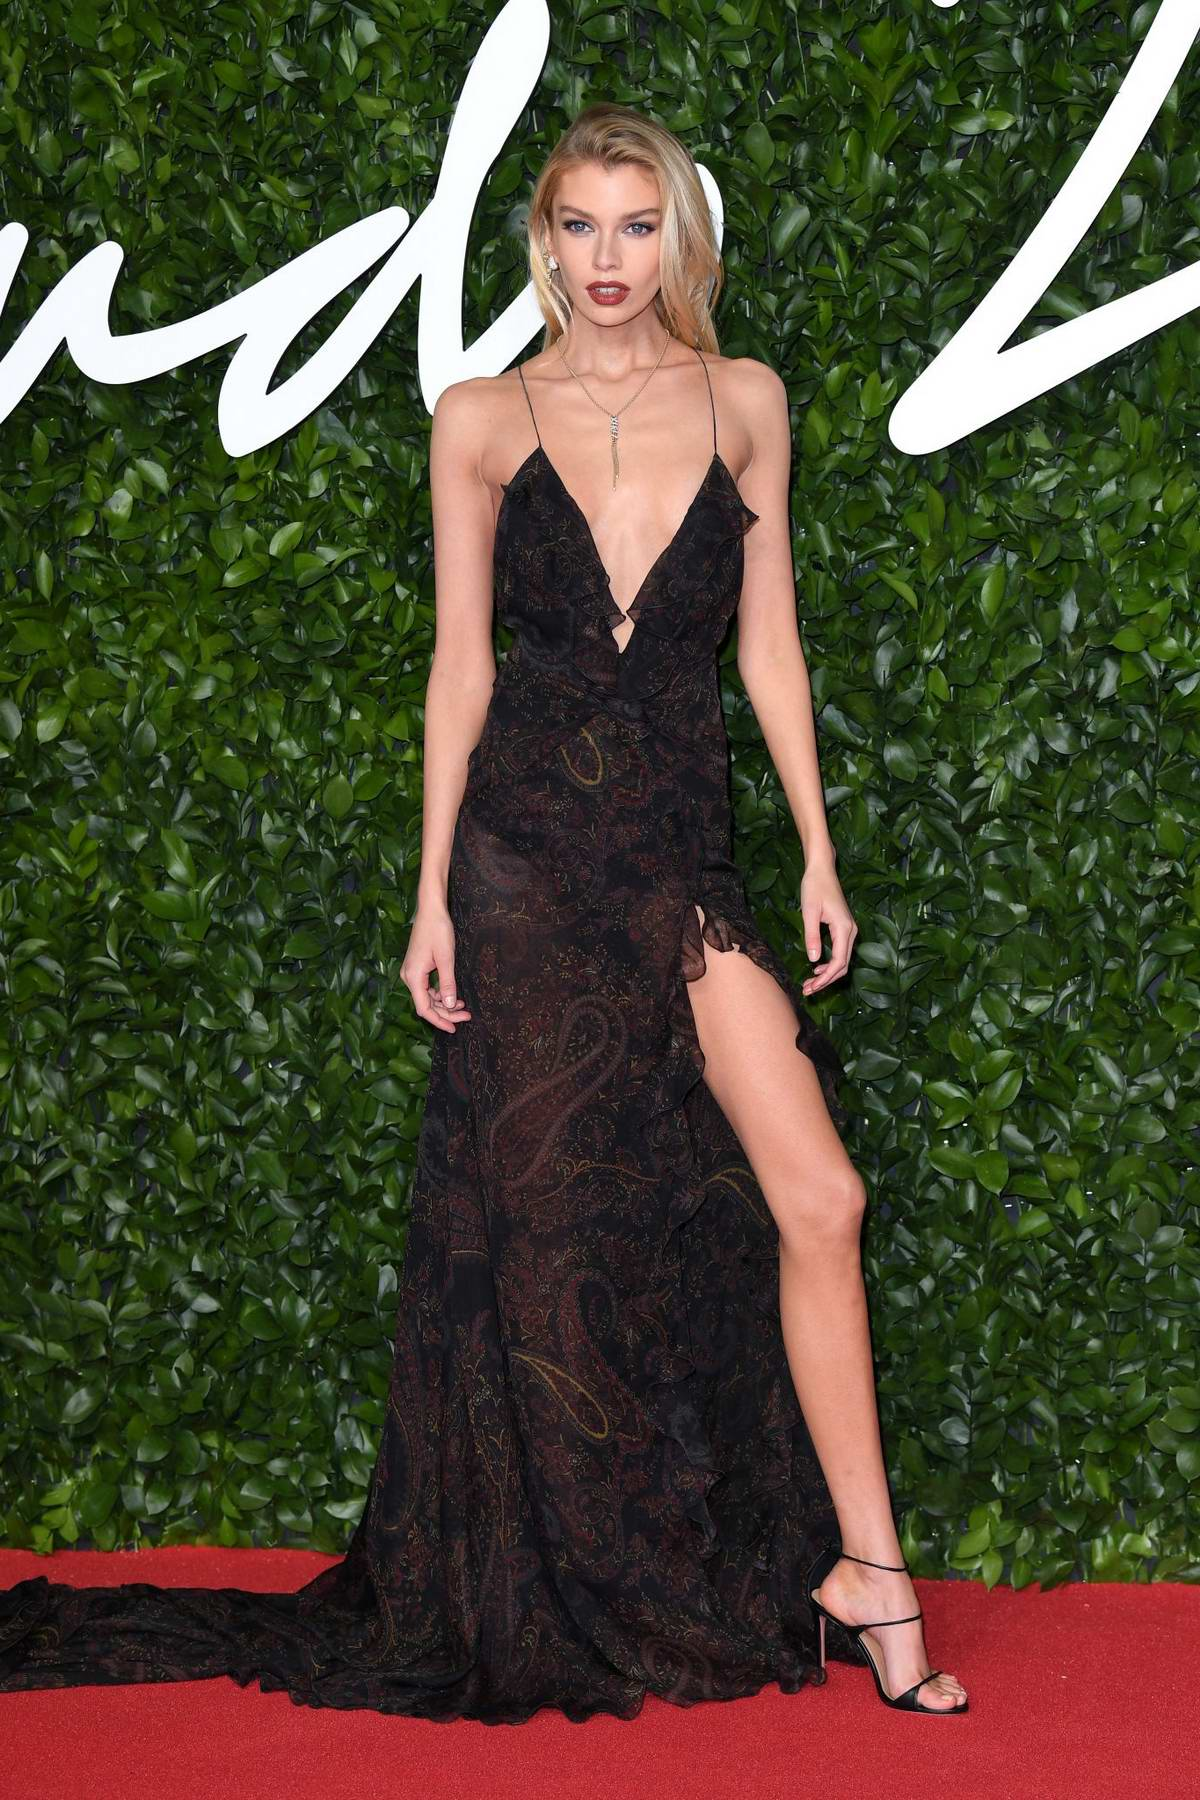 Stella Maxwell attends The Fashion Awards 2019 held at Royal Albert Hall in London, UK